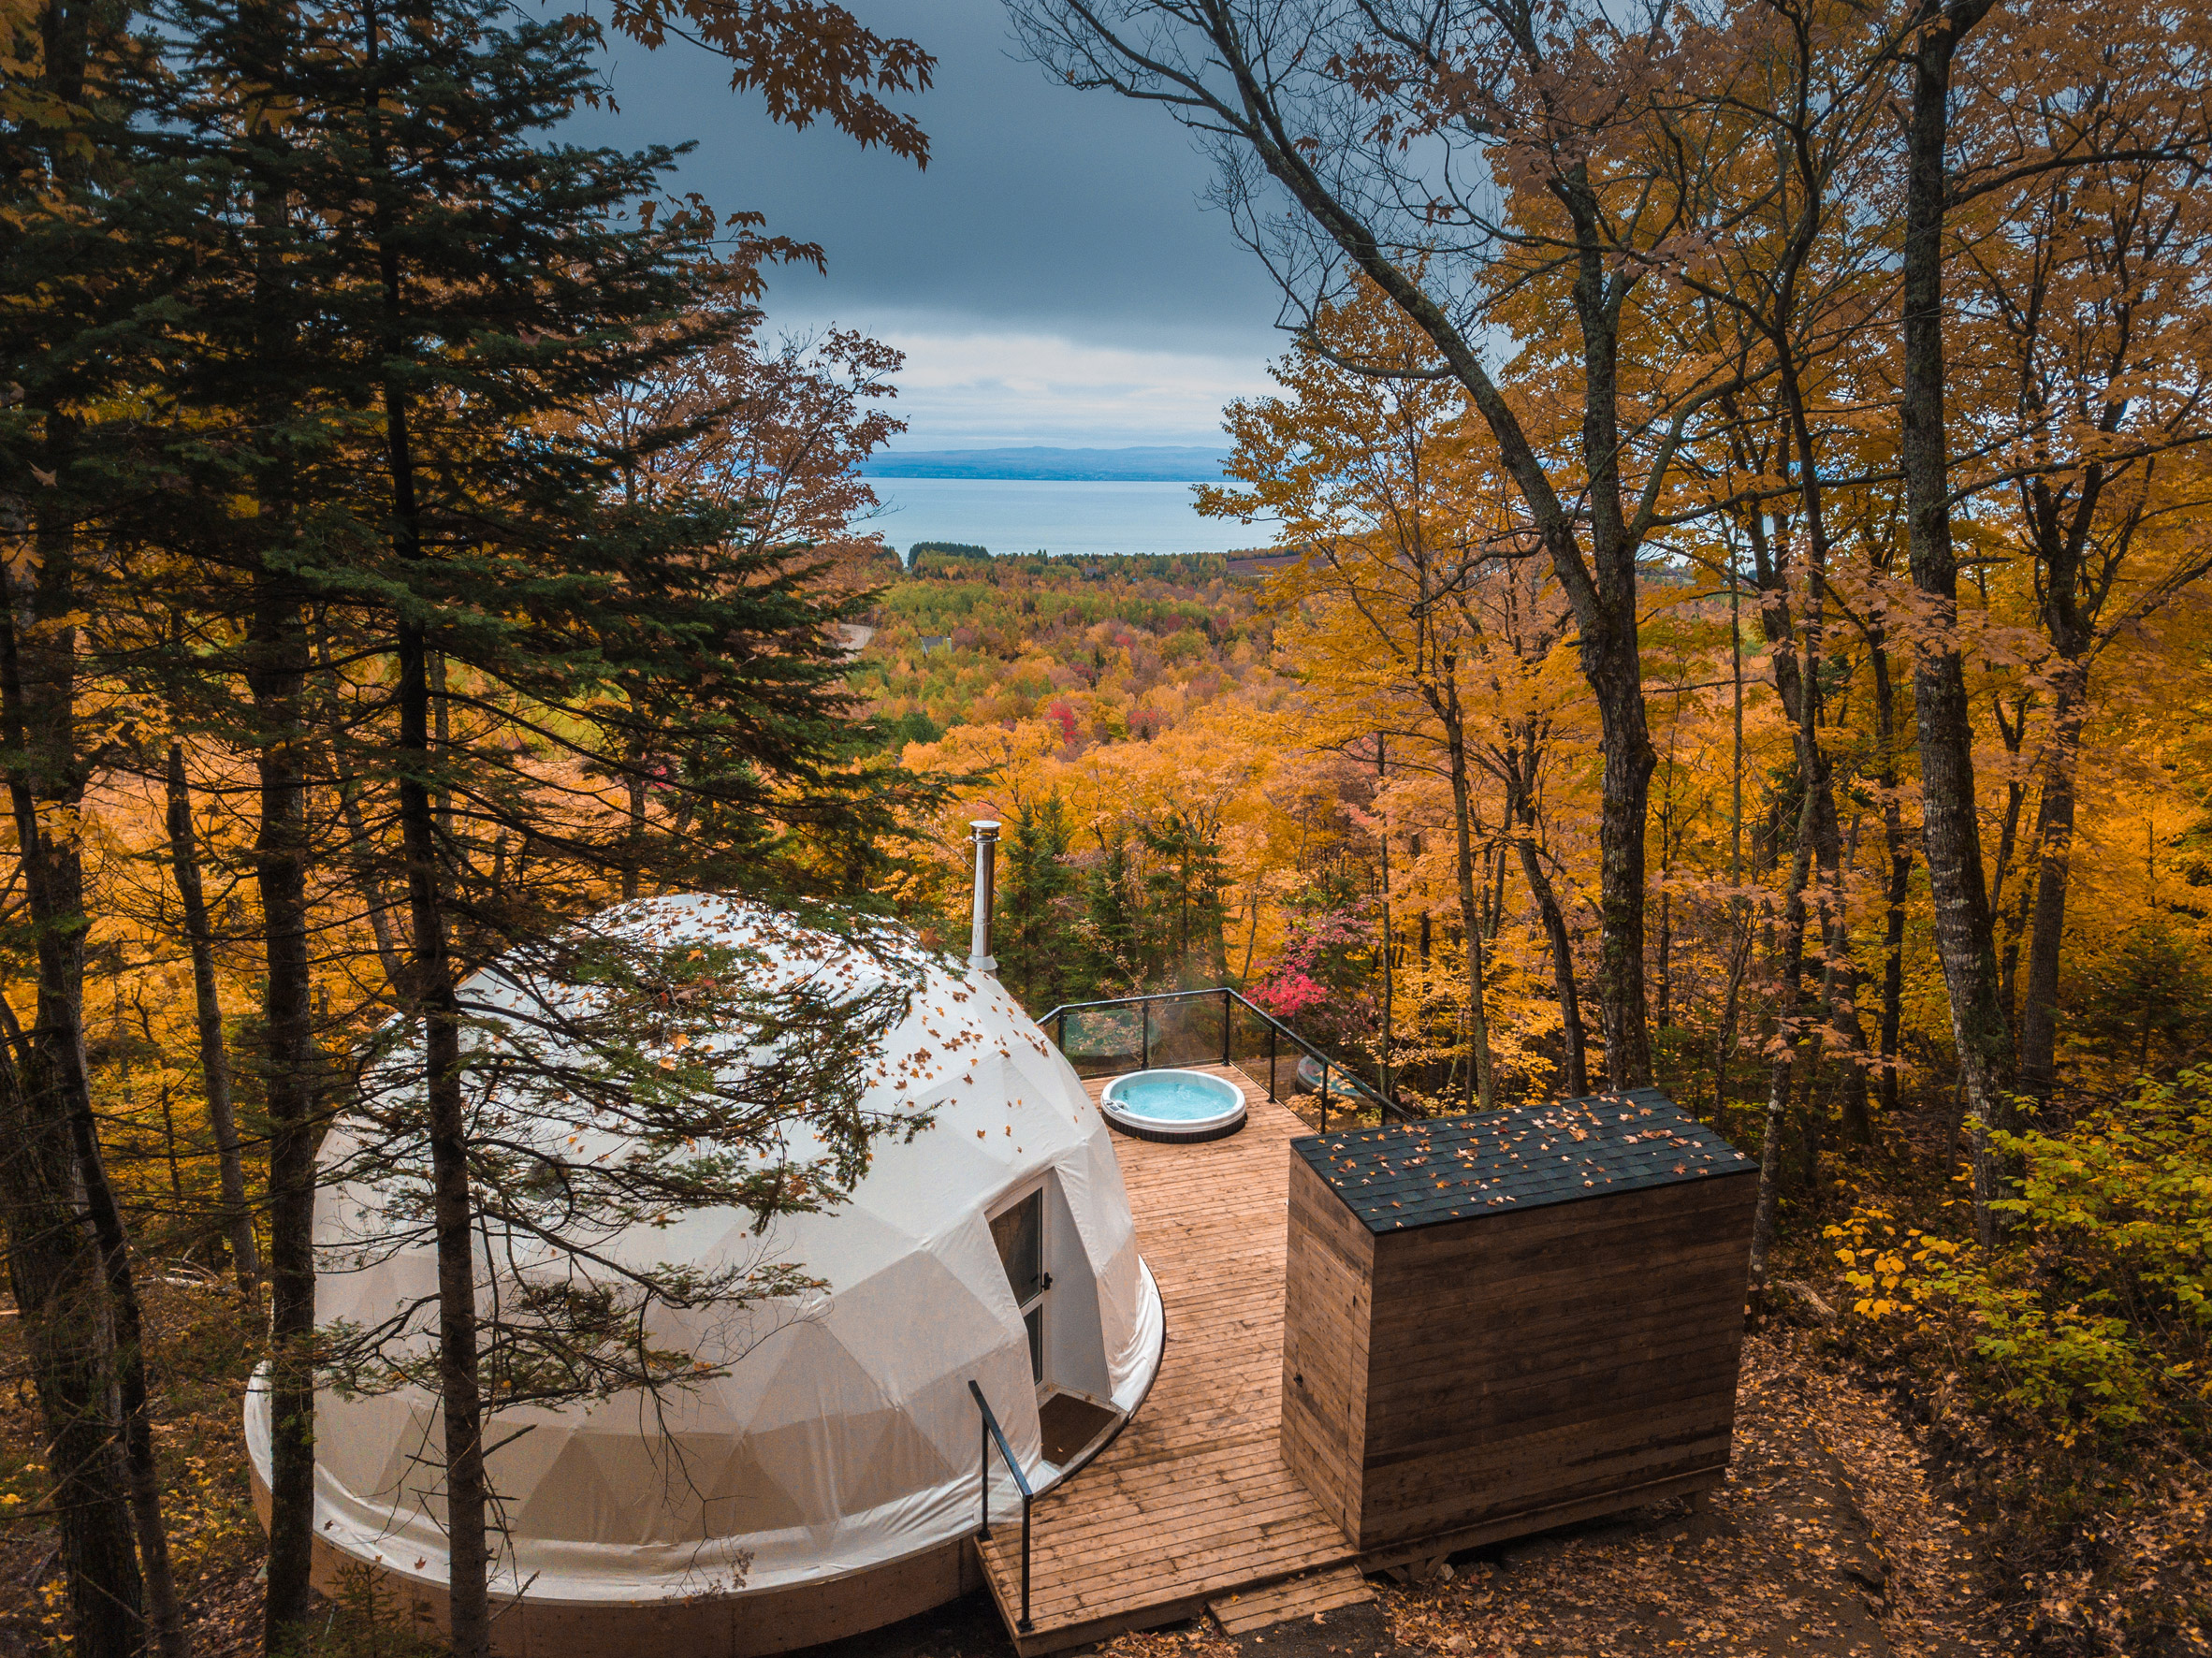 Dome on wooden deck overlooking trees